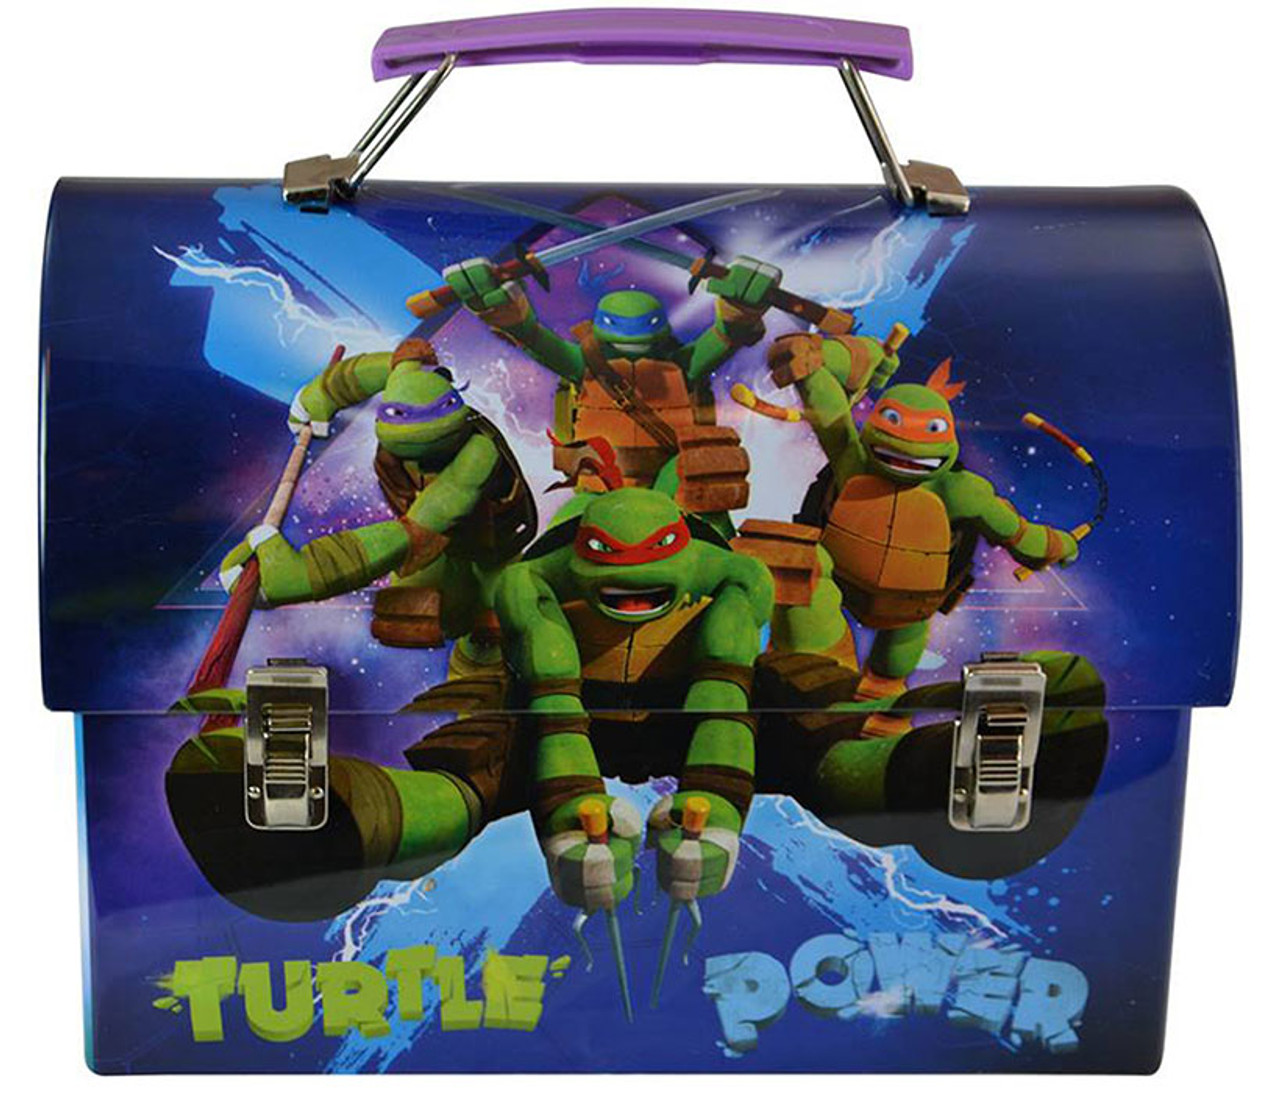 e1041fdcb3e7 Lunch Box Teenage Mutant Ninja Turtles Stainless Steel Utility Lunch Box